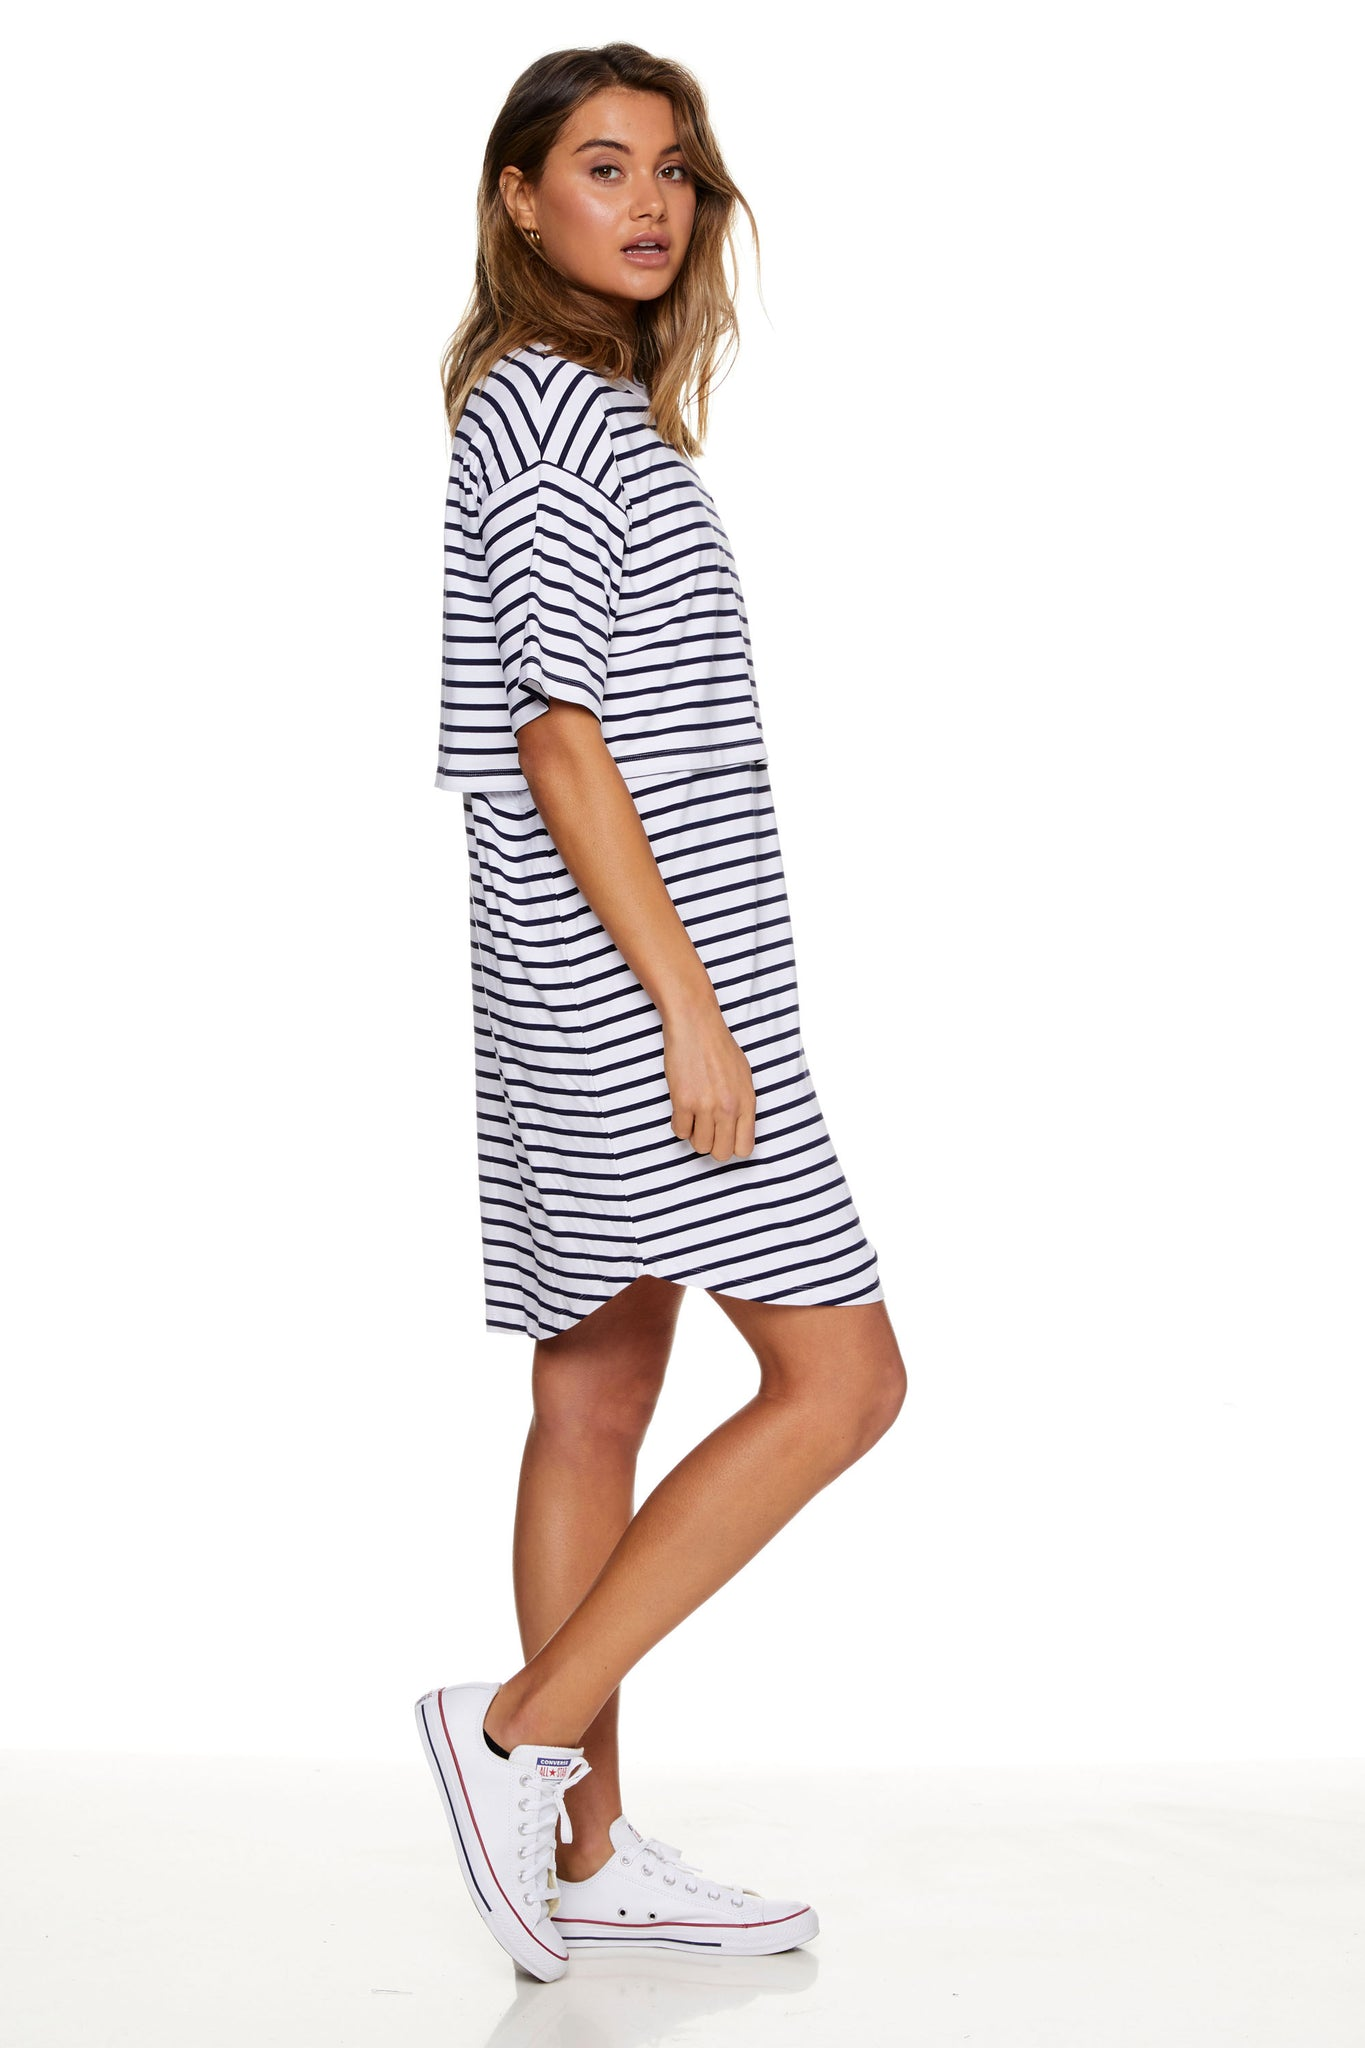 Stripe Maternity and Nursing Pajama Dress Image 6